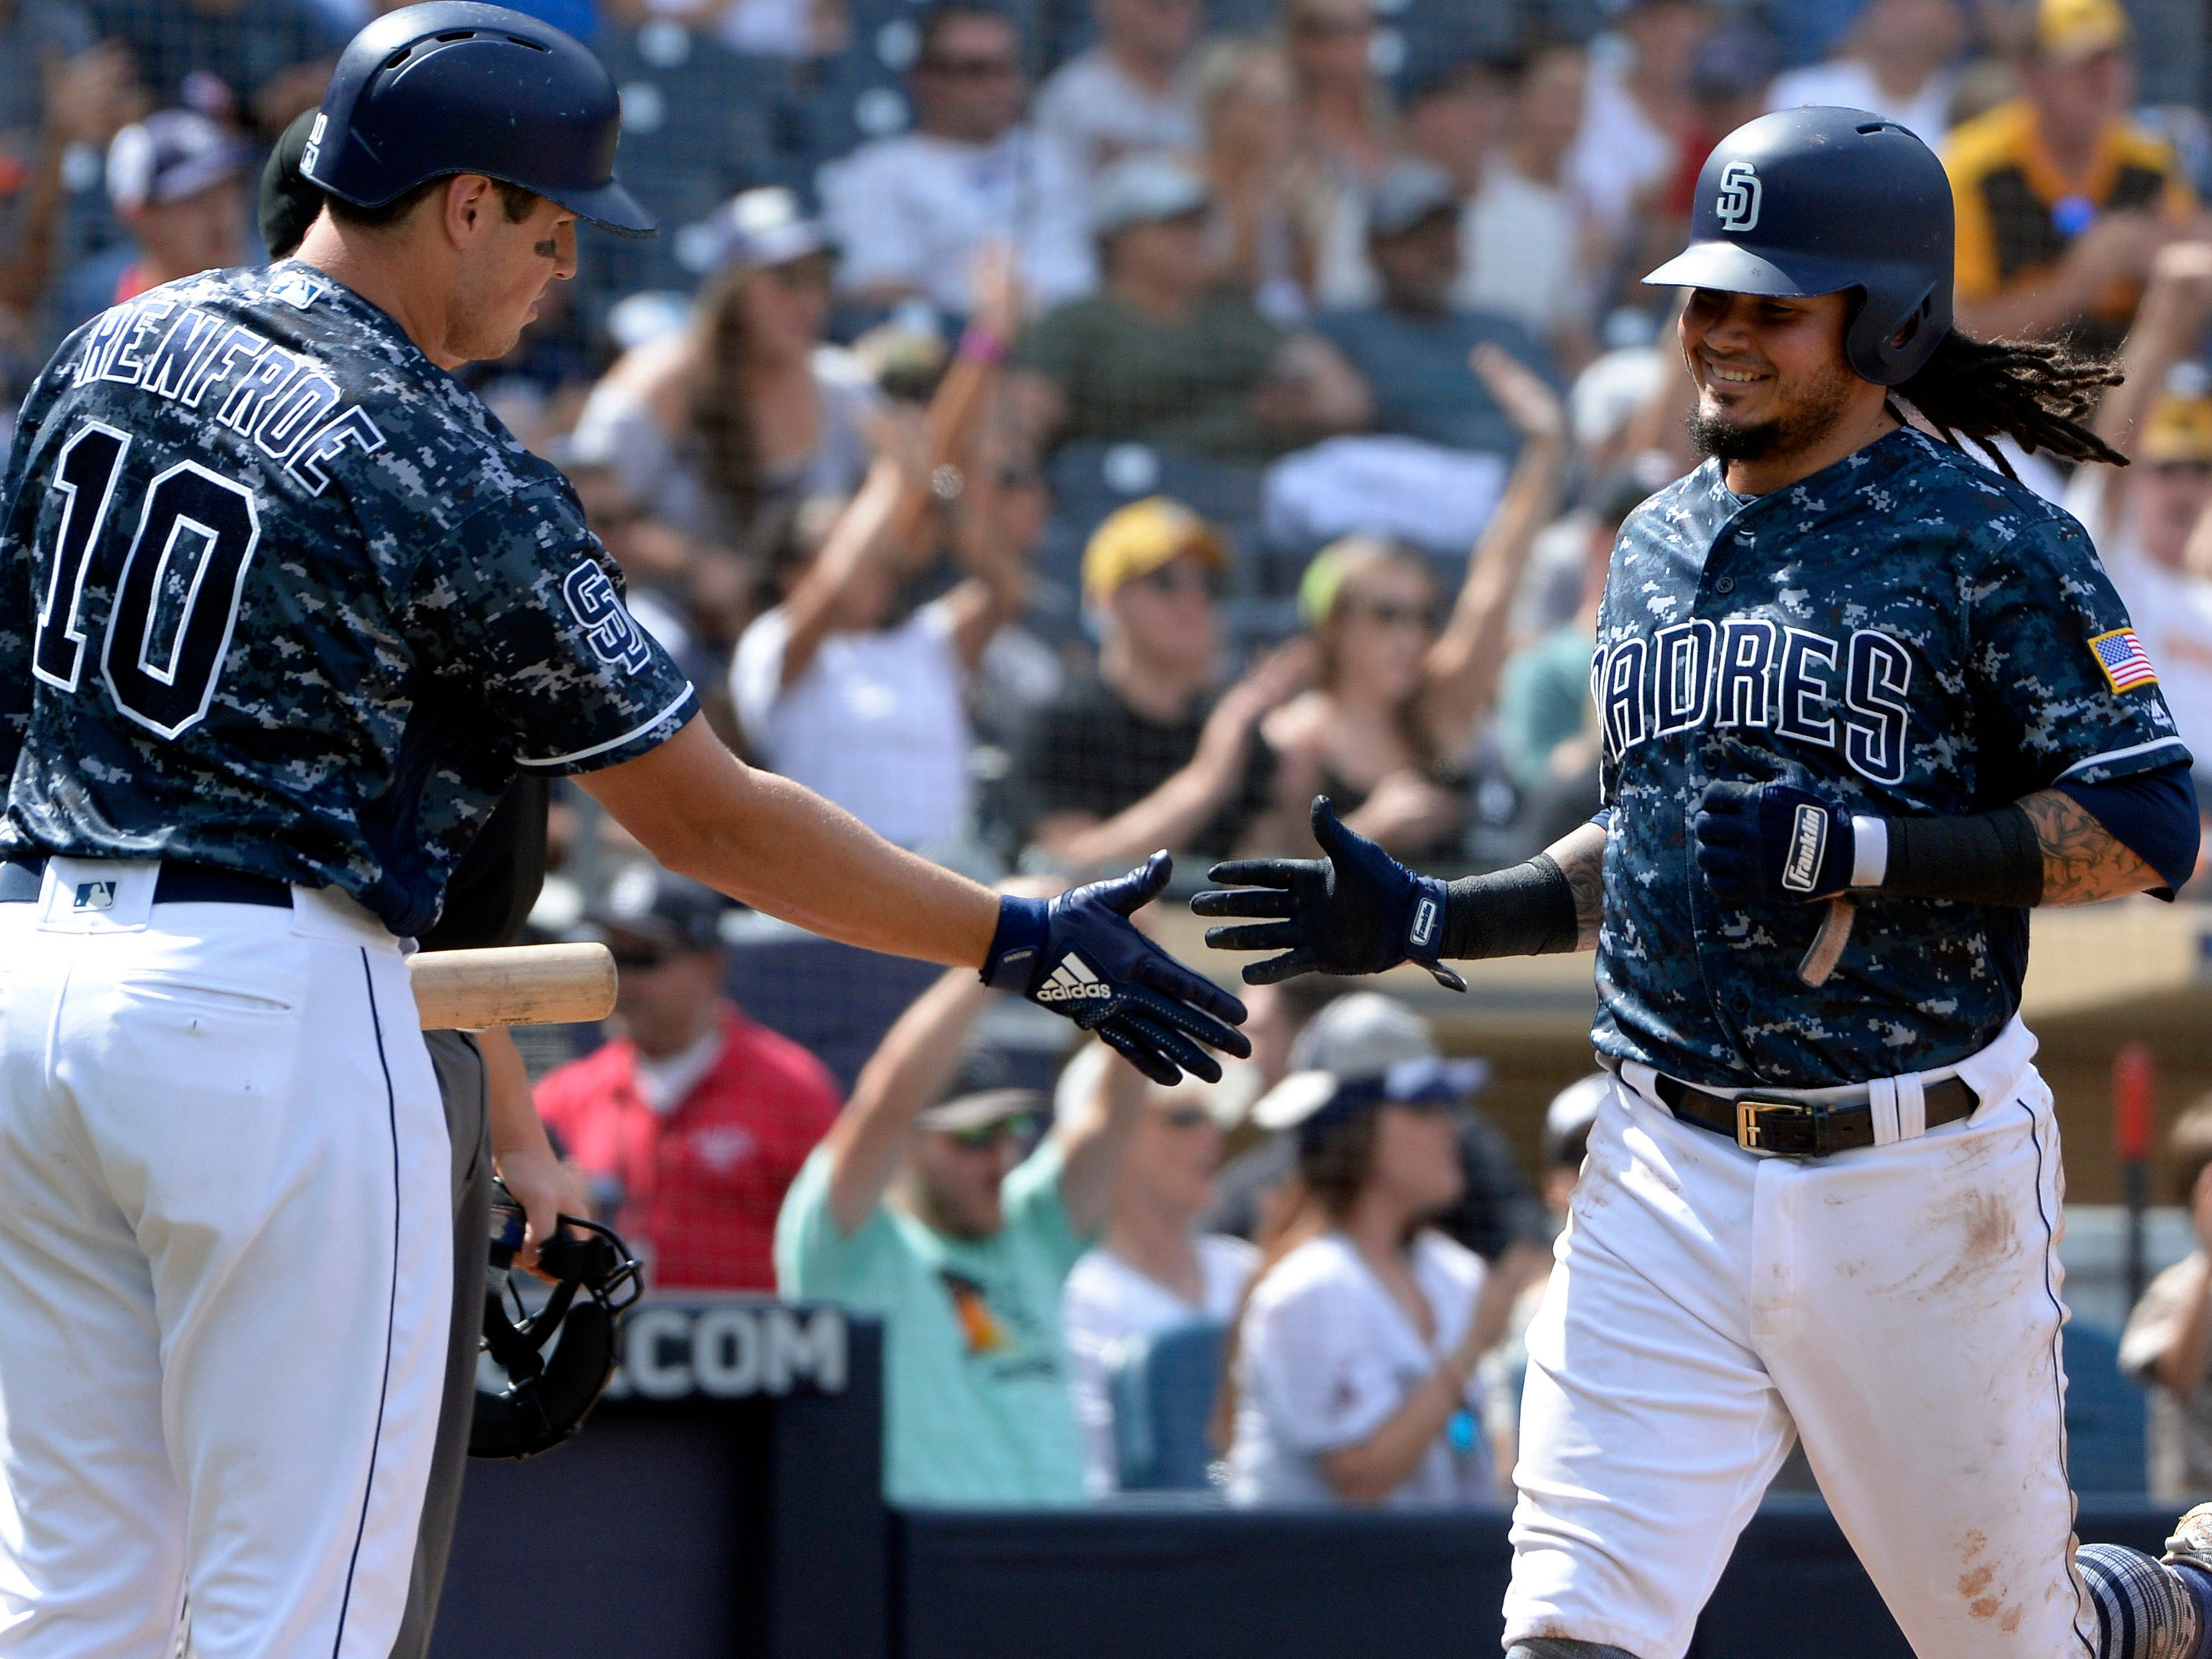 Sep 30, 2018; San Diego, CA, USA; San Diego Padres shortstop Freddy Galvis (right) is congratulated by left fielder Hunter Renfroe (10) after scoring on a double by right fielder Franmil Reyes (not pictured) during the fifth inning against the Arizona Diamondbacks at Petco Park. Mandatory Credit: Jake Roth-USA TODAY Sports